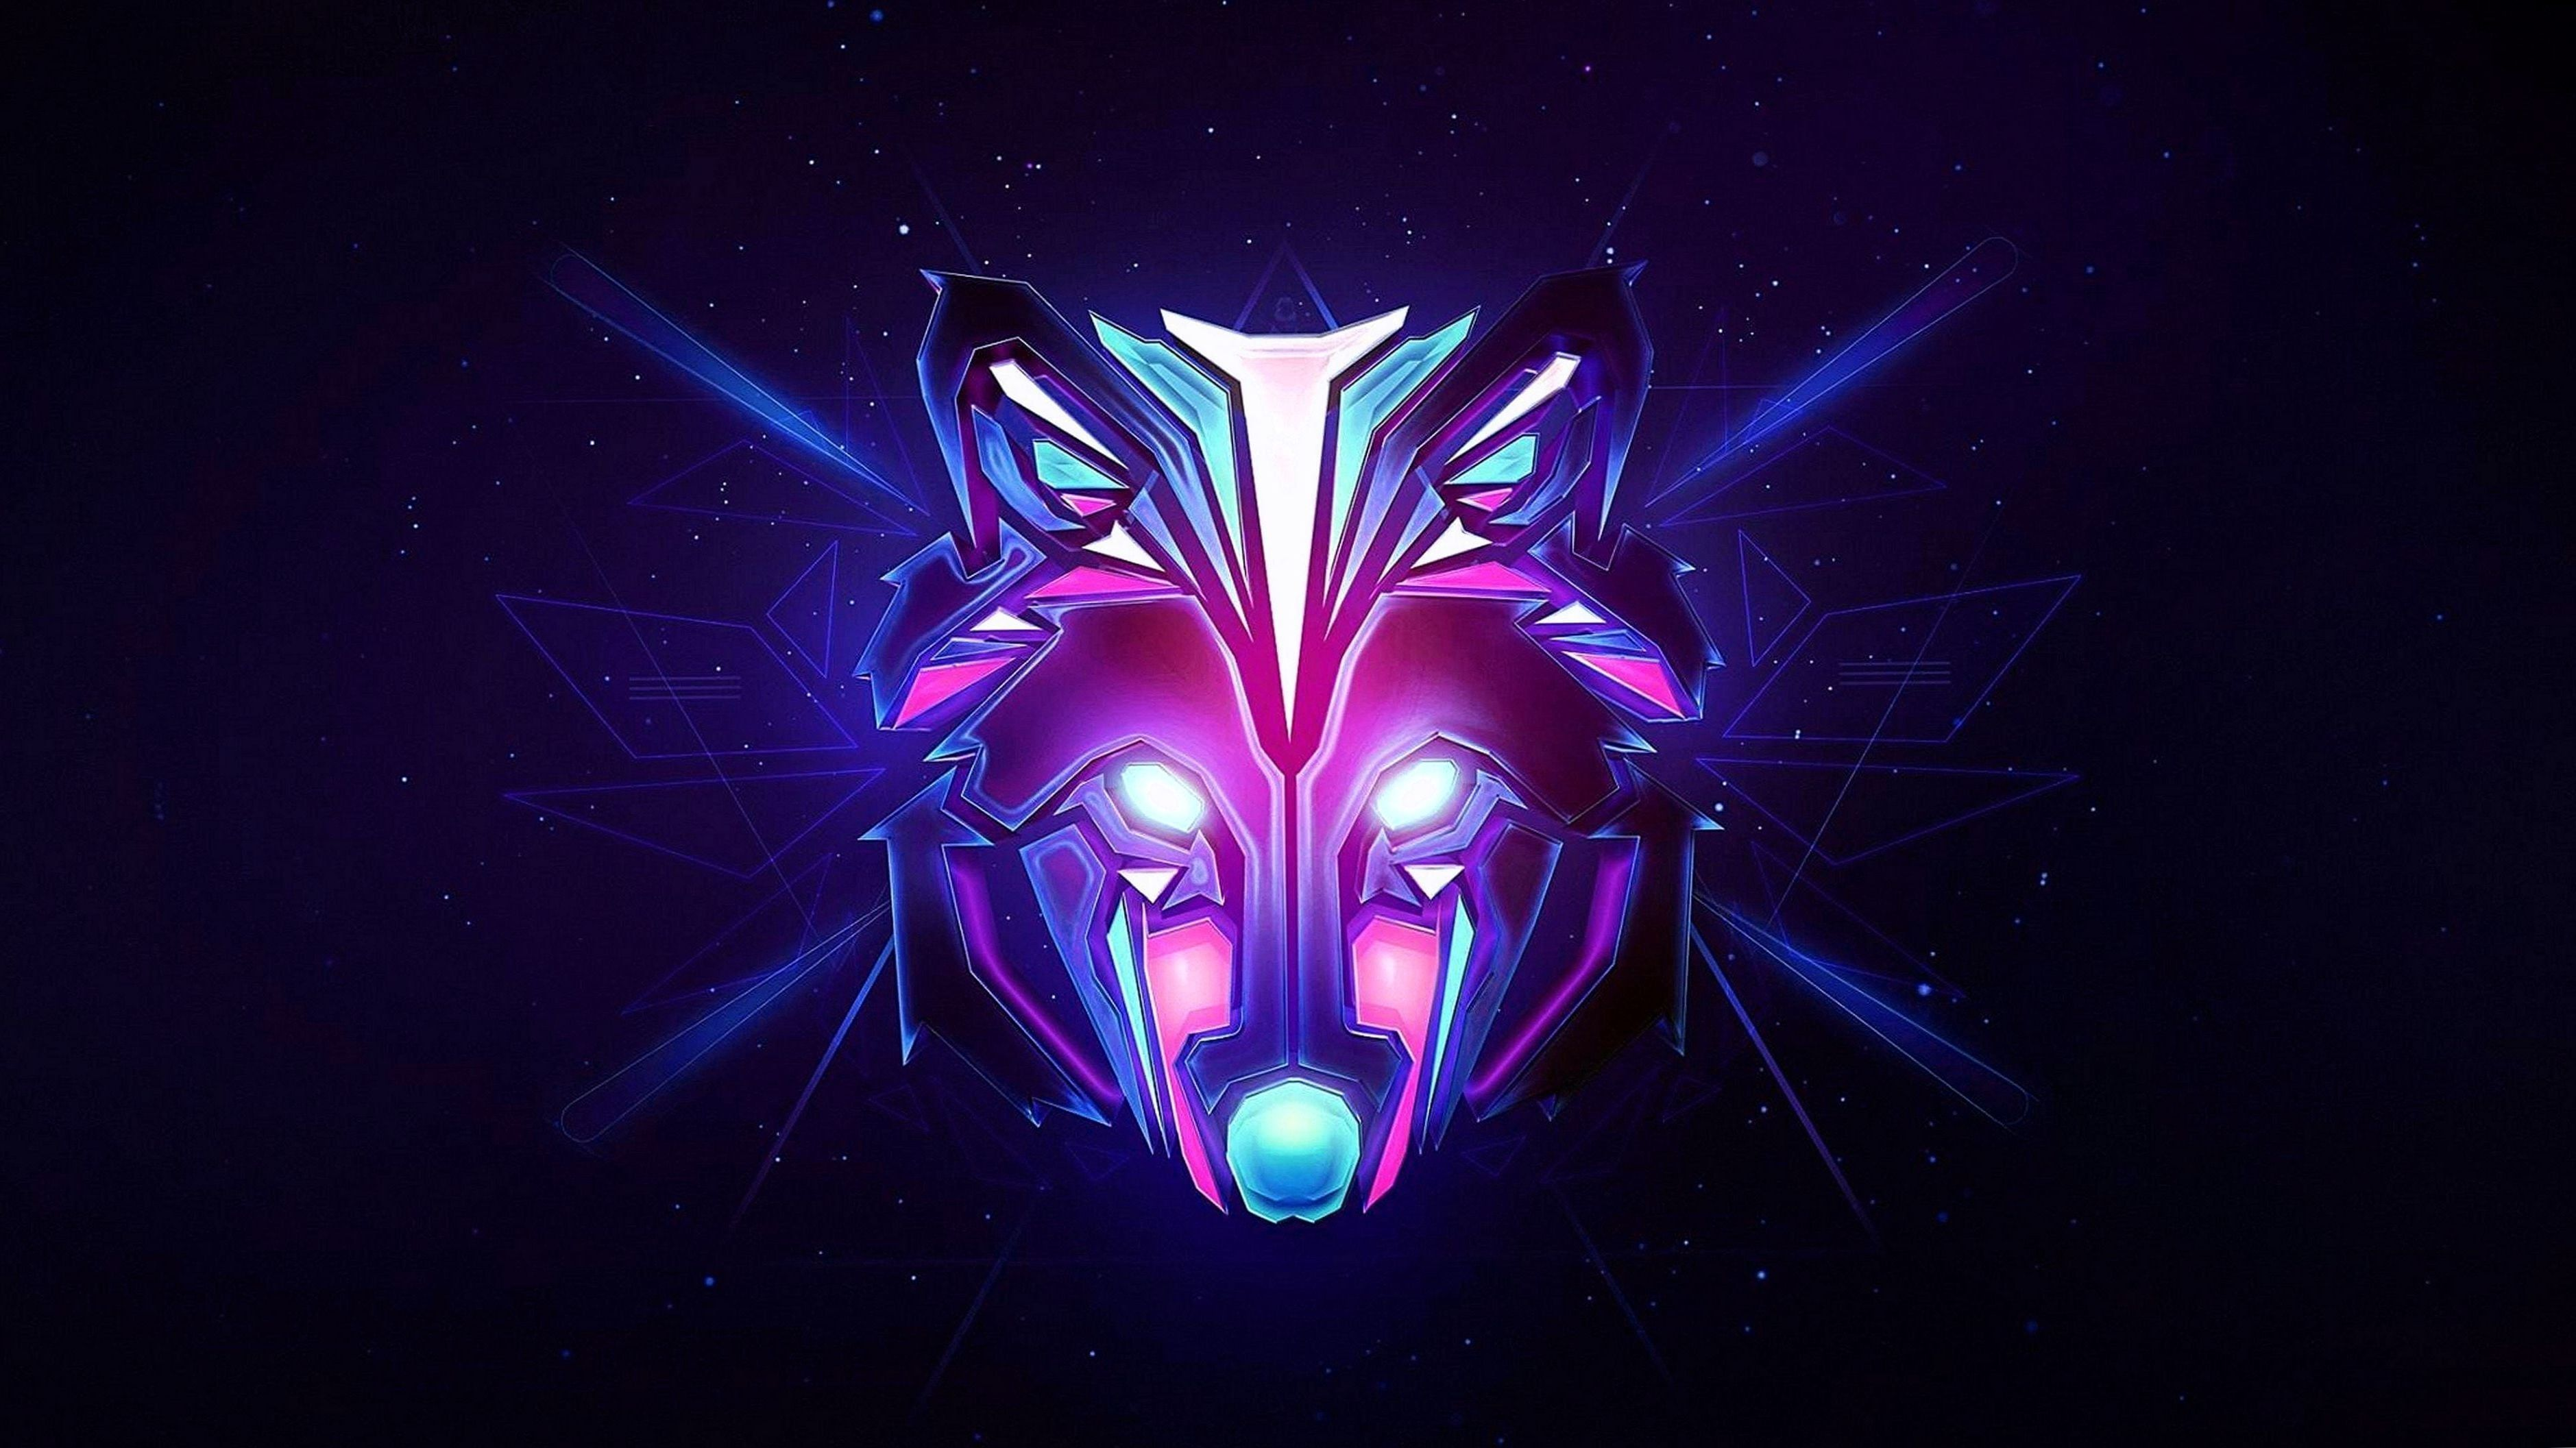 Gamingwolfs In 2020 Wolf Wallpaper 2048x1152 Wallpapers Gaming Wallpapers